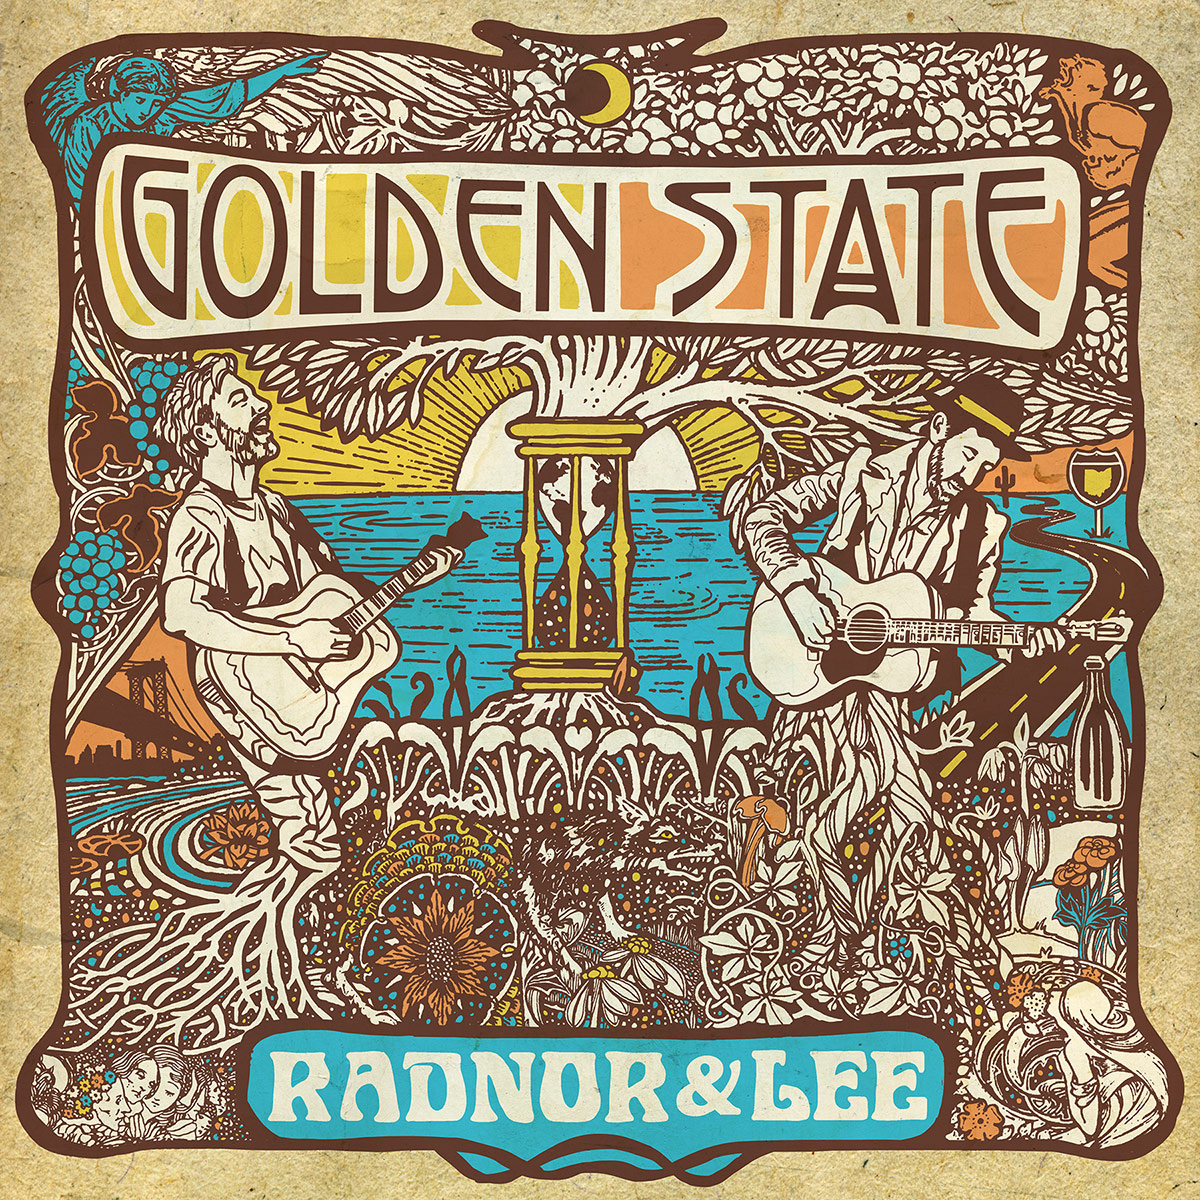 RADNOR & LEE: GOLDEN STATE